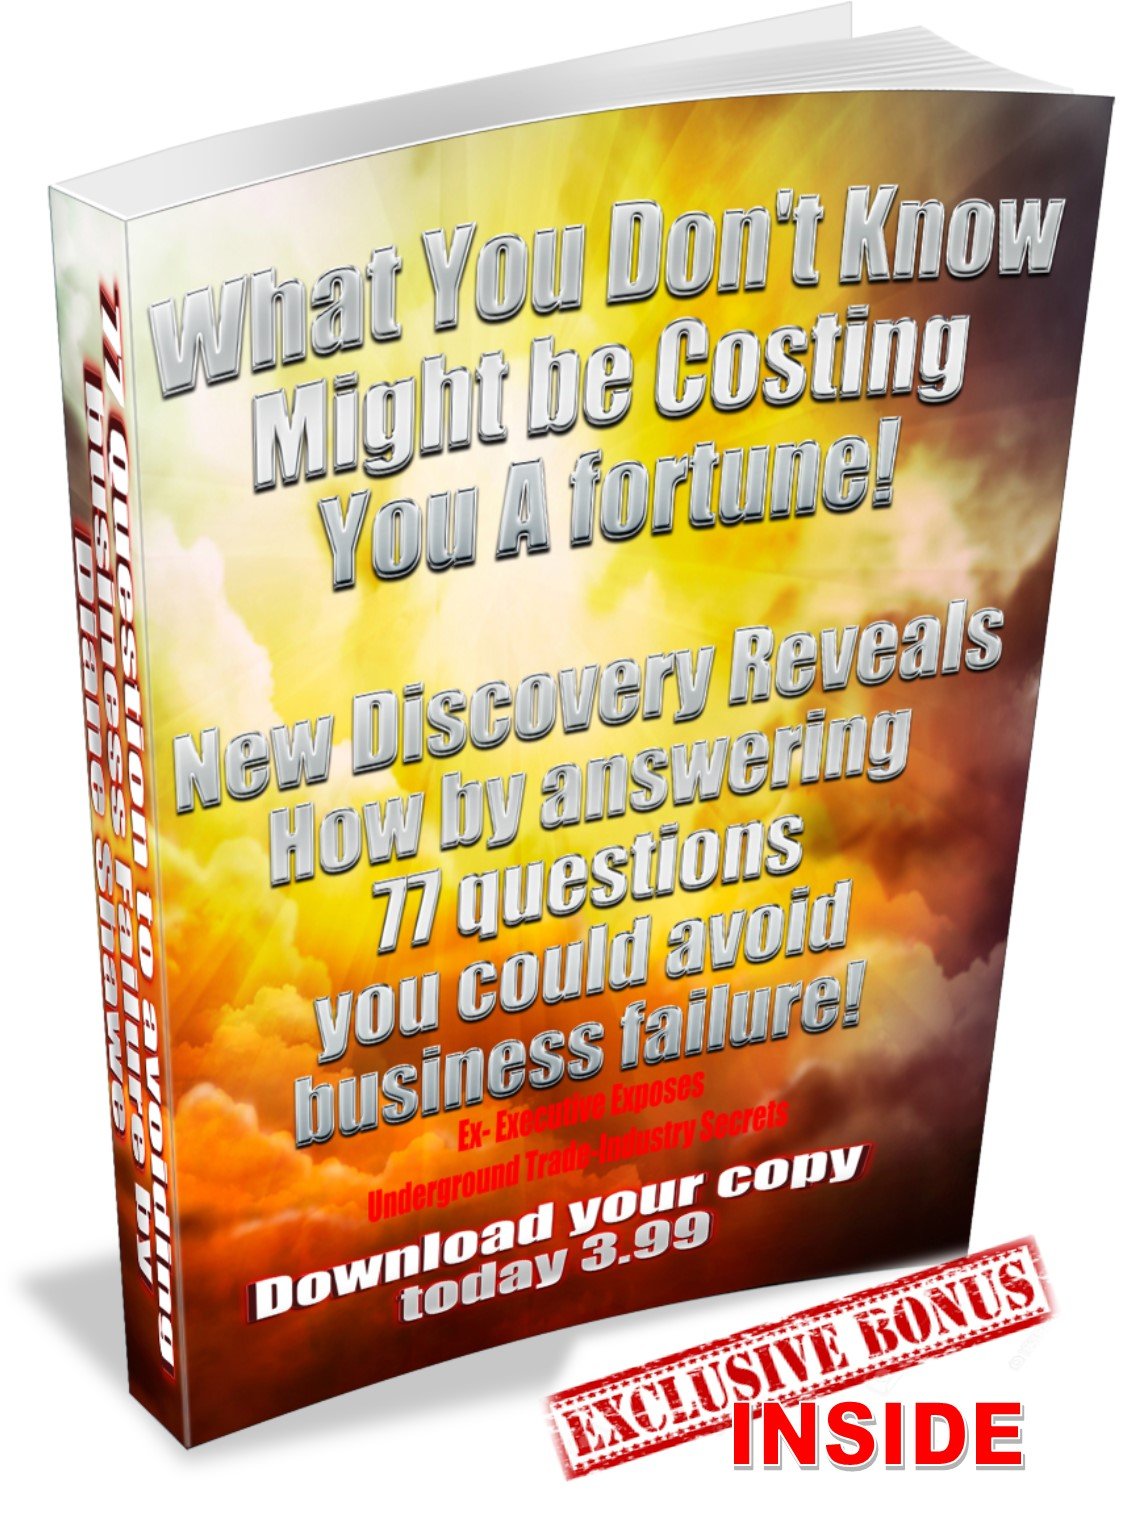 77 Questions to avoid business failure by Diane Shawe with Exclusive Bonus